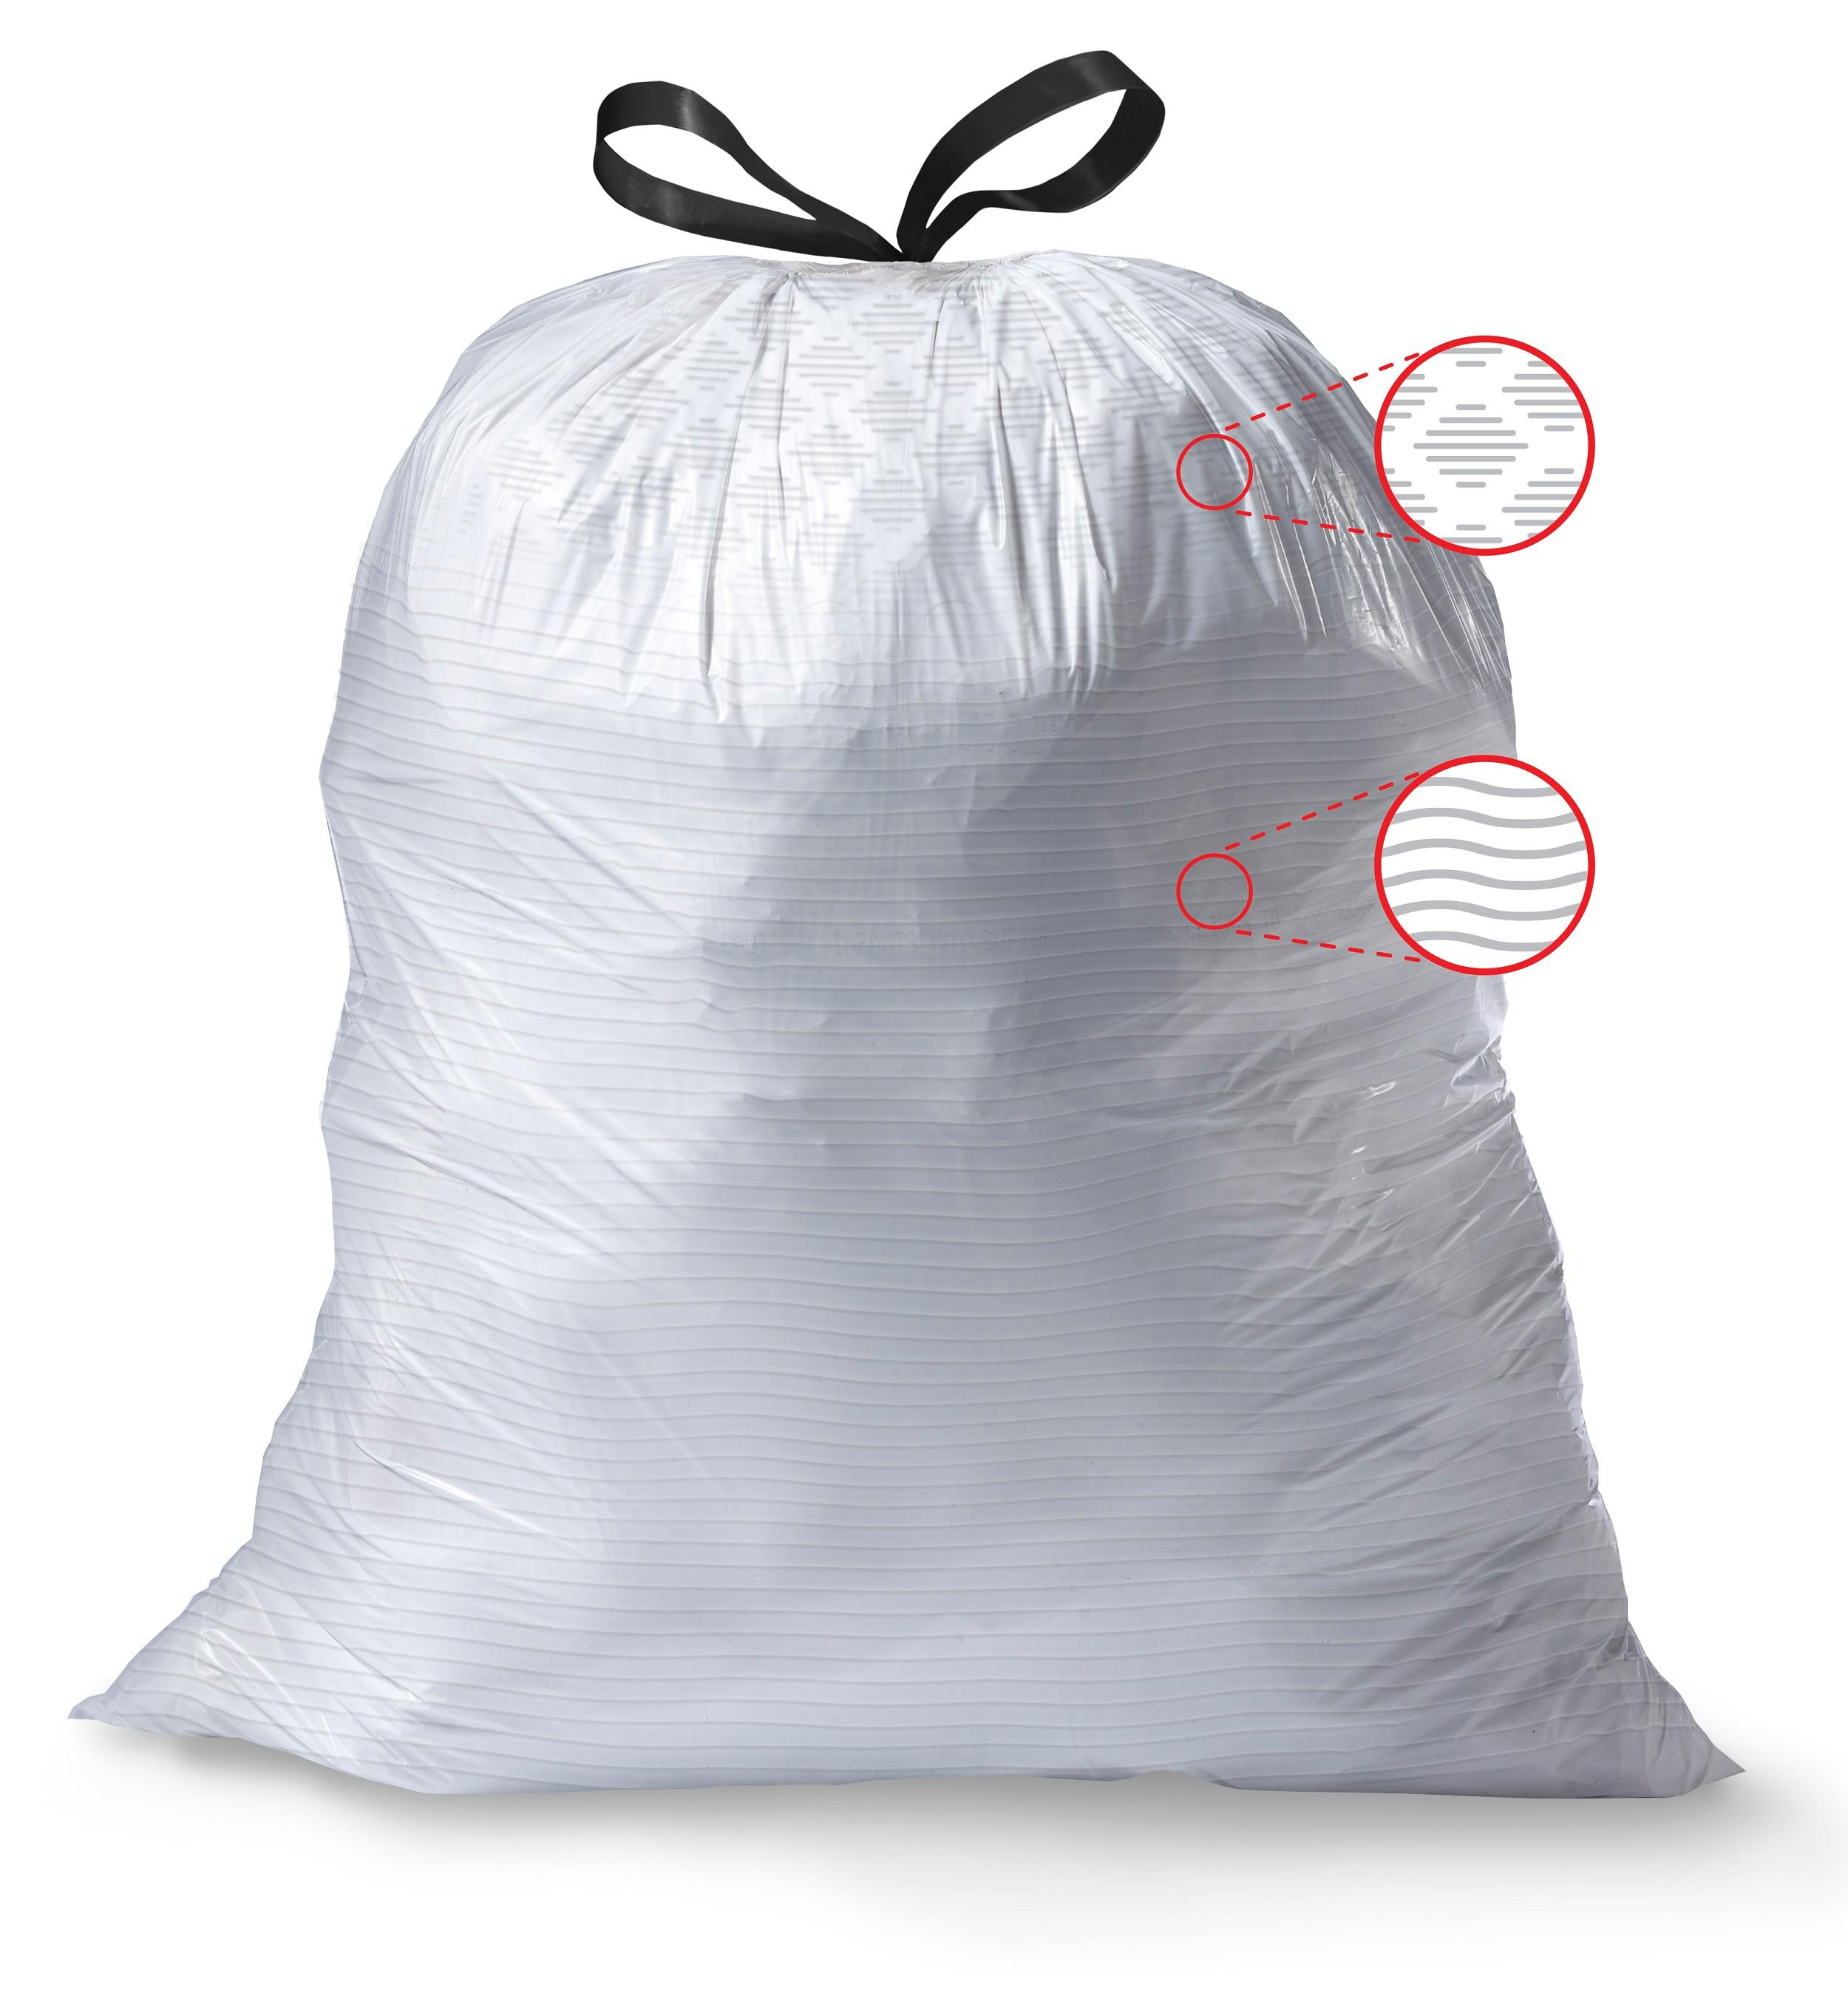 Kitchen Garbage Bags: Glad Odorshield Fresh Clean Tall Kitchen Trash Garbage